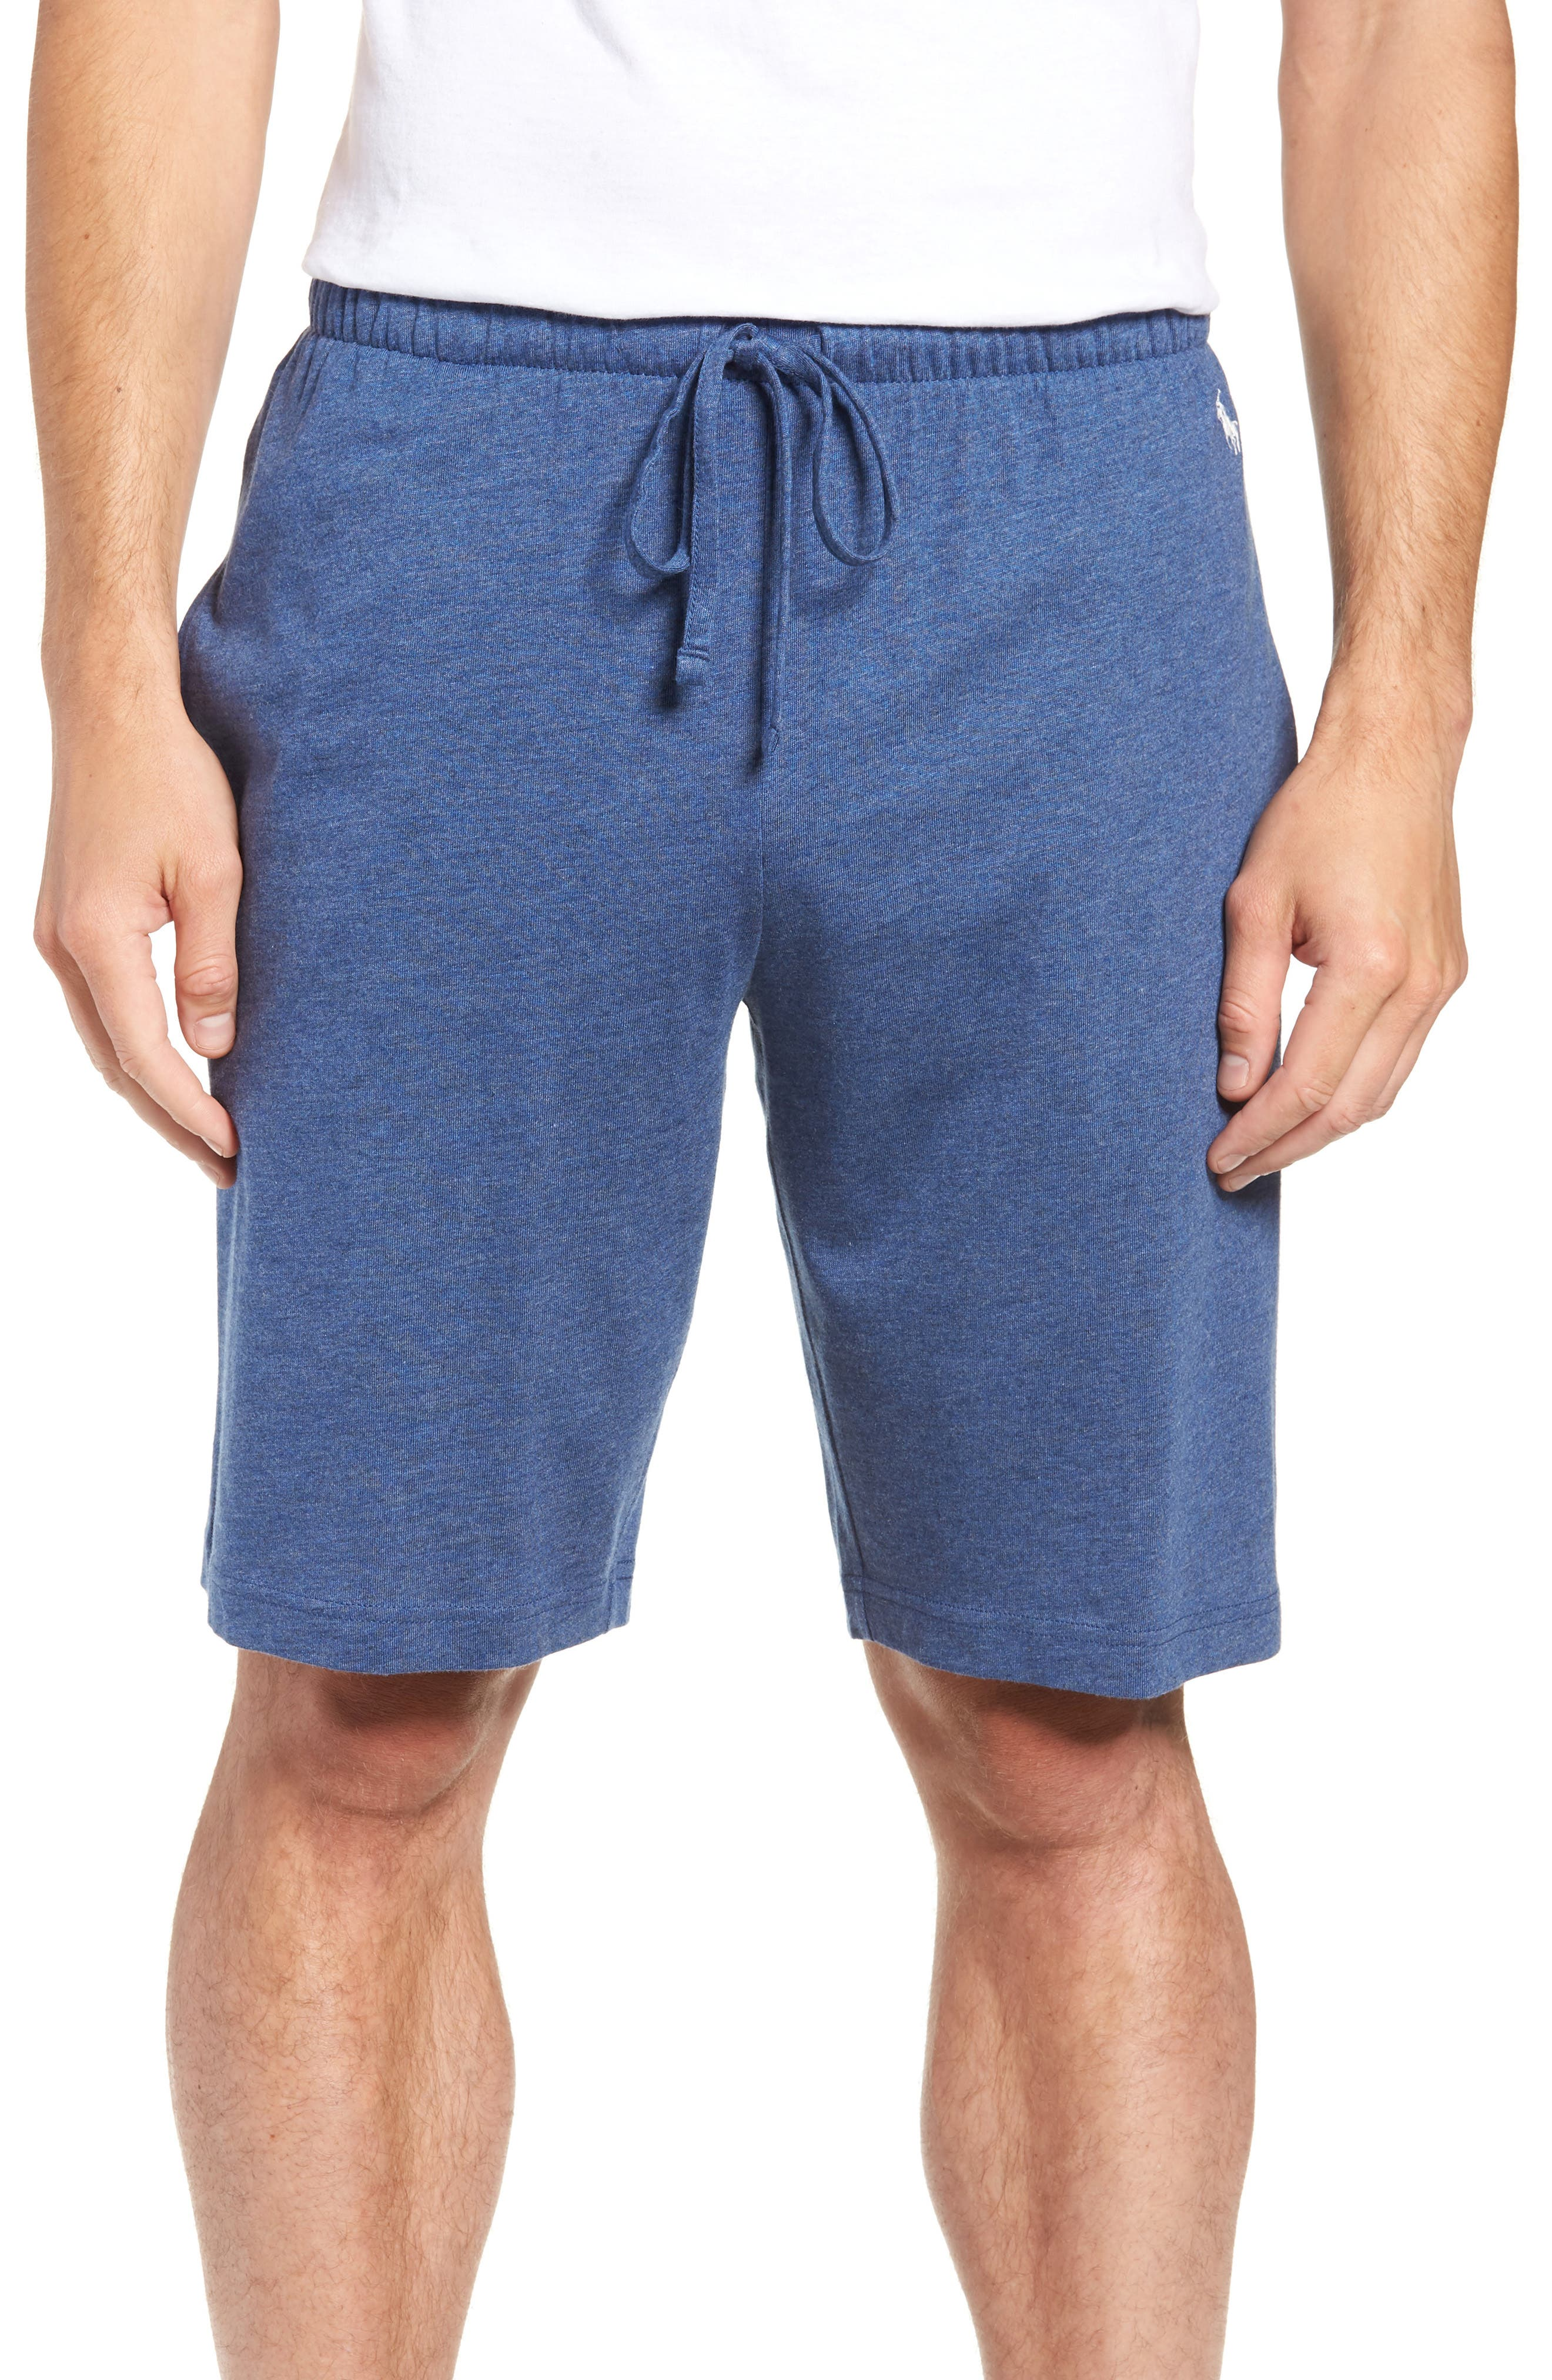 Supreme Comfort Lounge Shorts,                             Main thumbnail 1, color,                             402